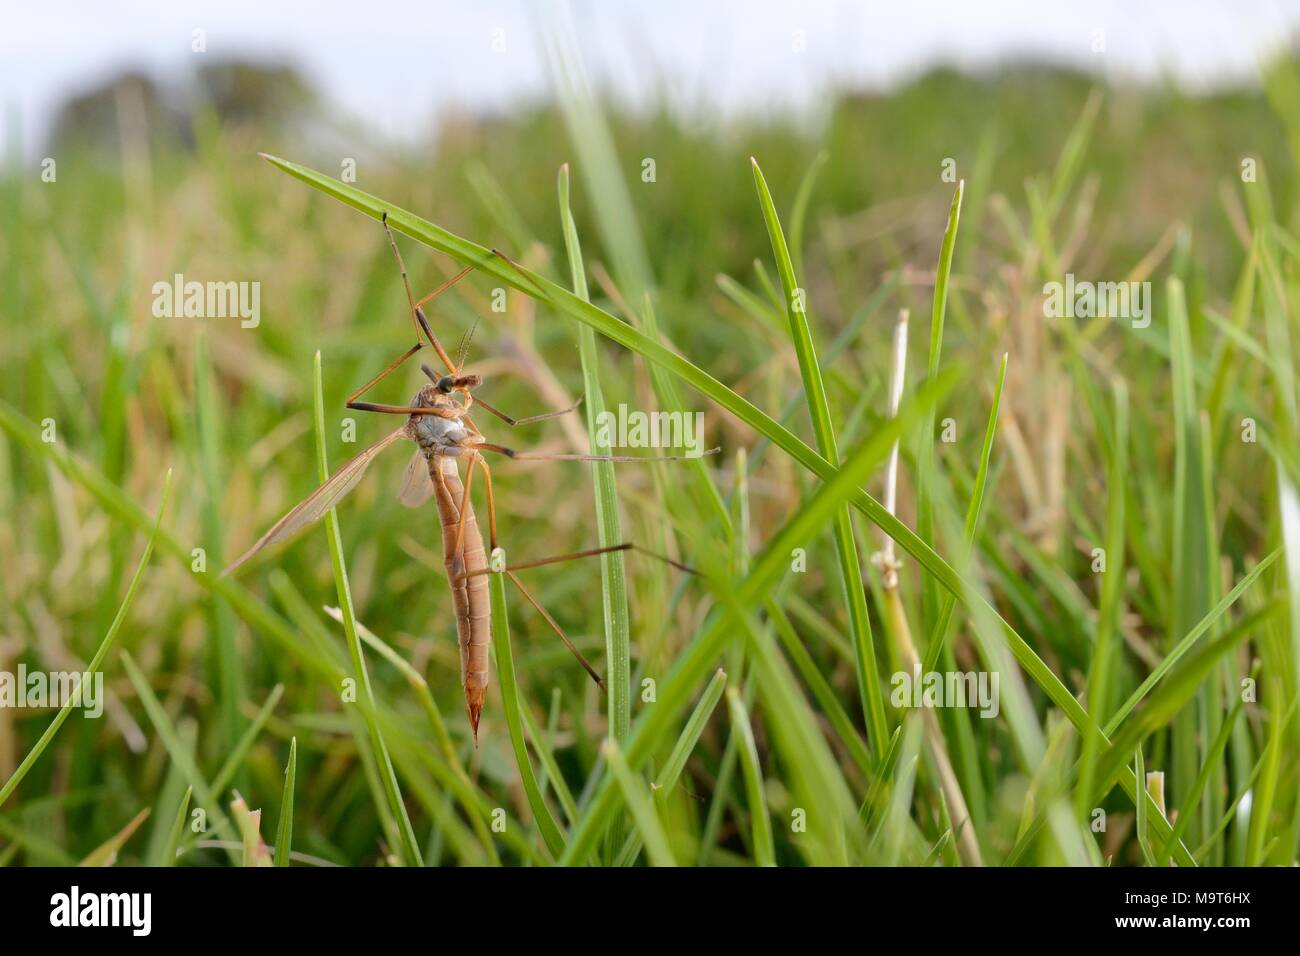 Female Common European Crane fly / Daddy long legs (Tipula paludosa) recently emerged and resting on grass blades in riverside water meadow, Wiltshire - Stock Image